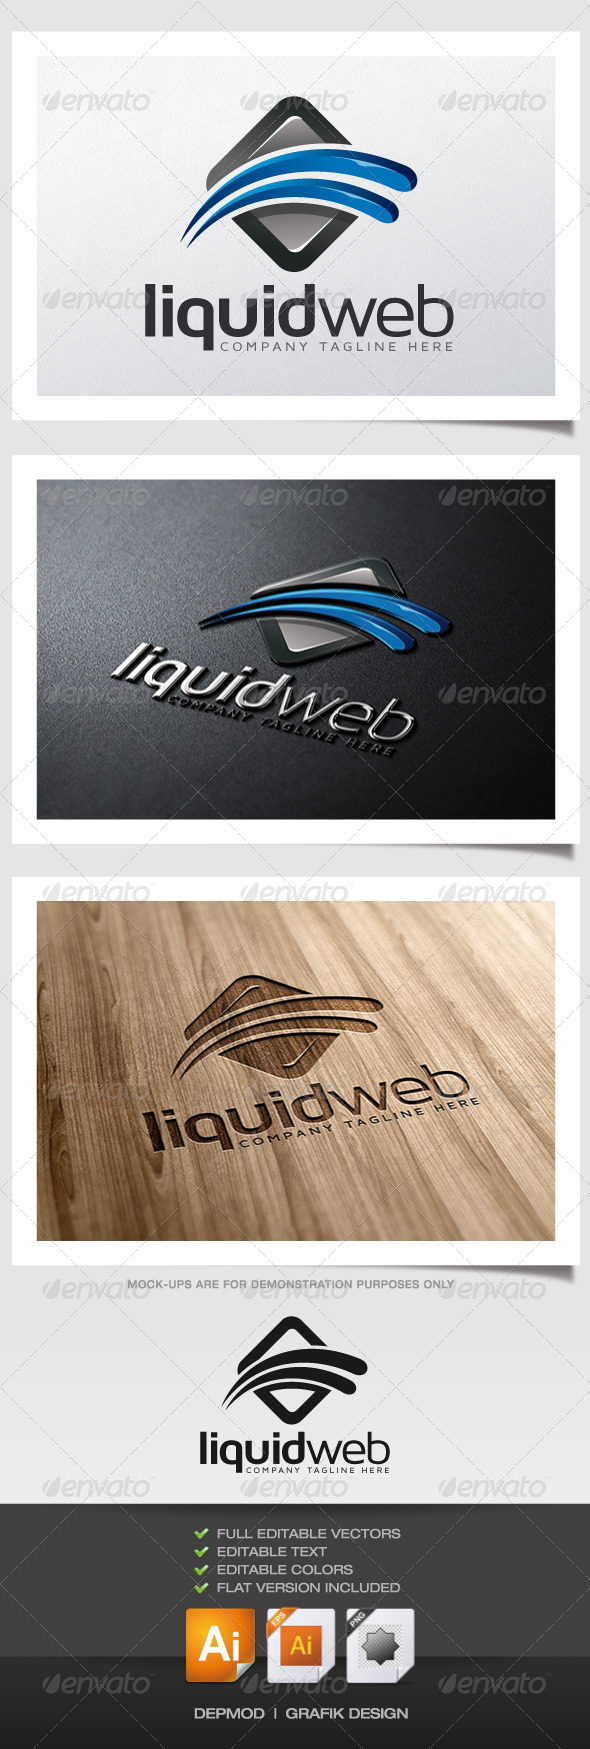 Liquid Web Logo - Abstract Logo Templates